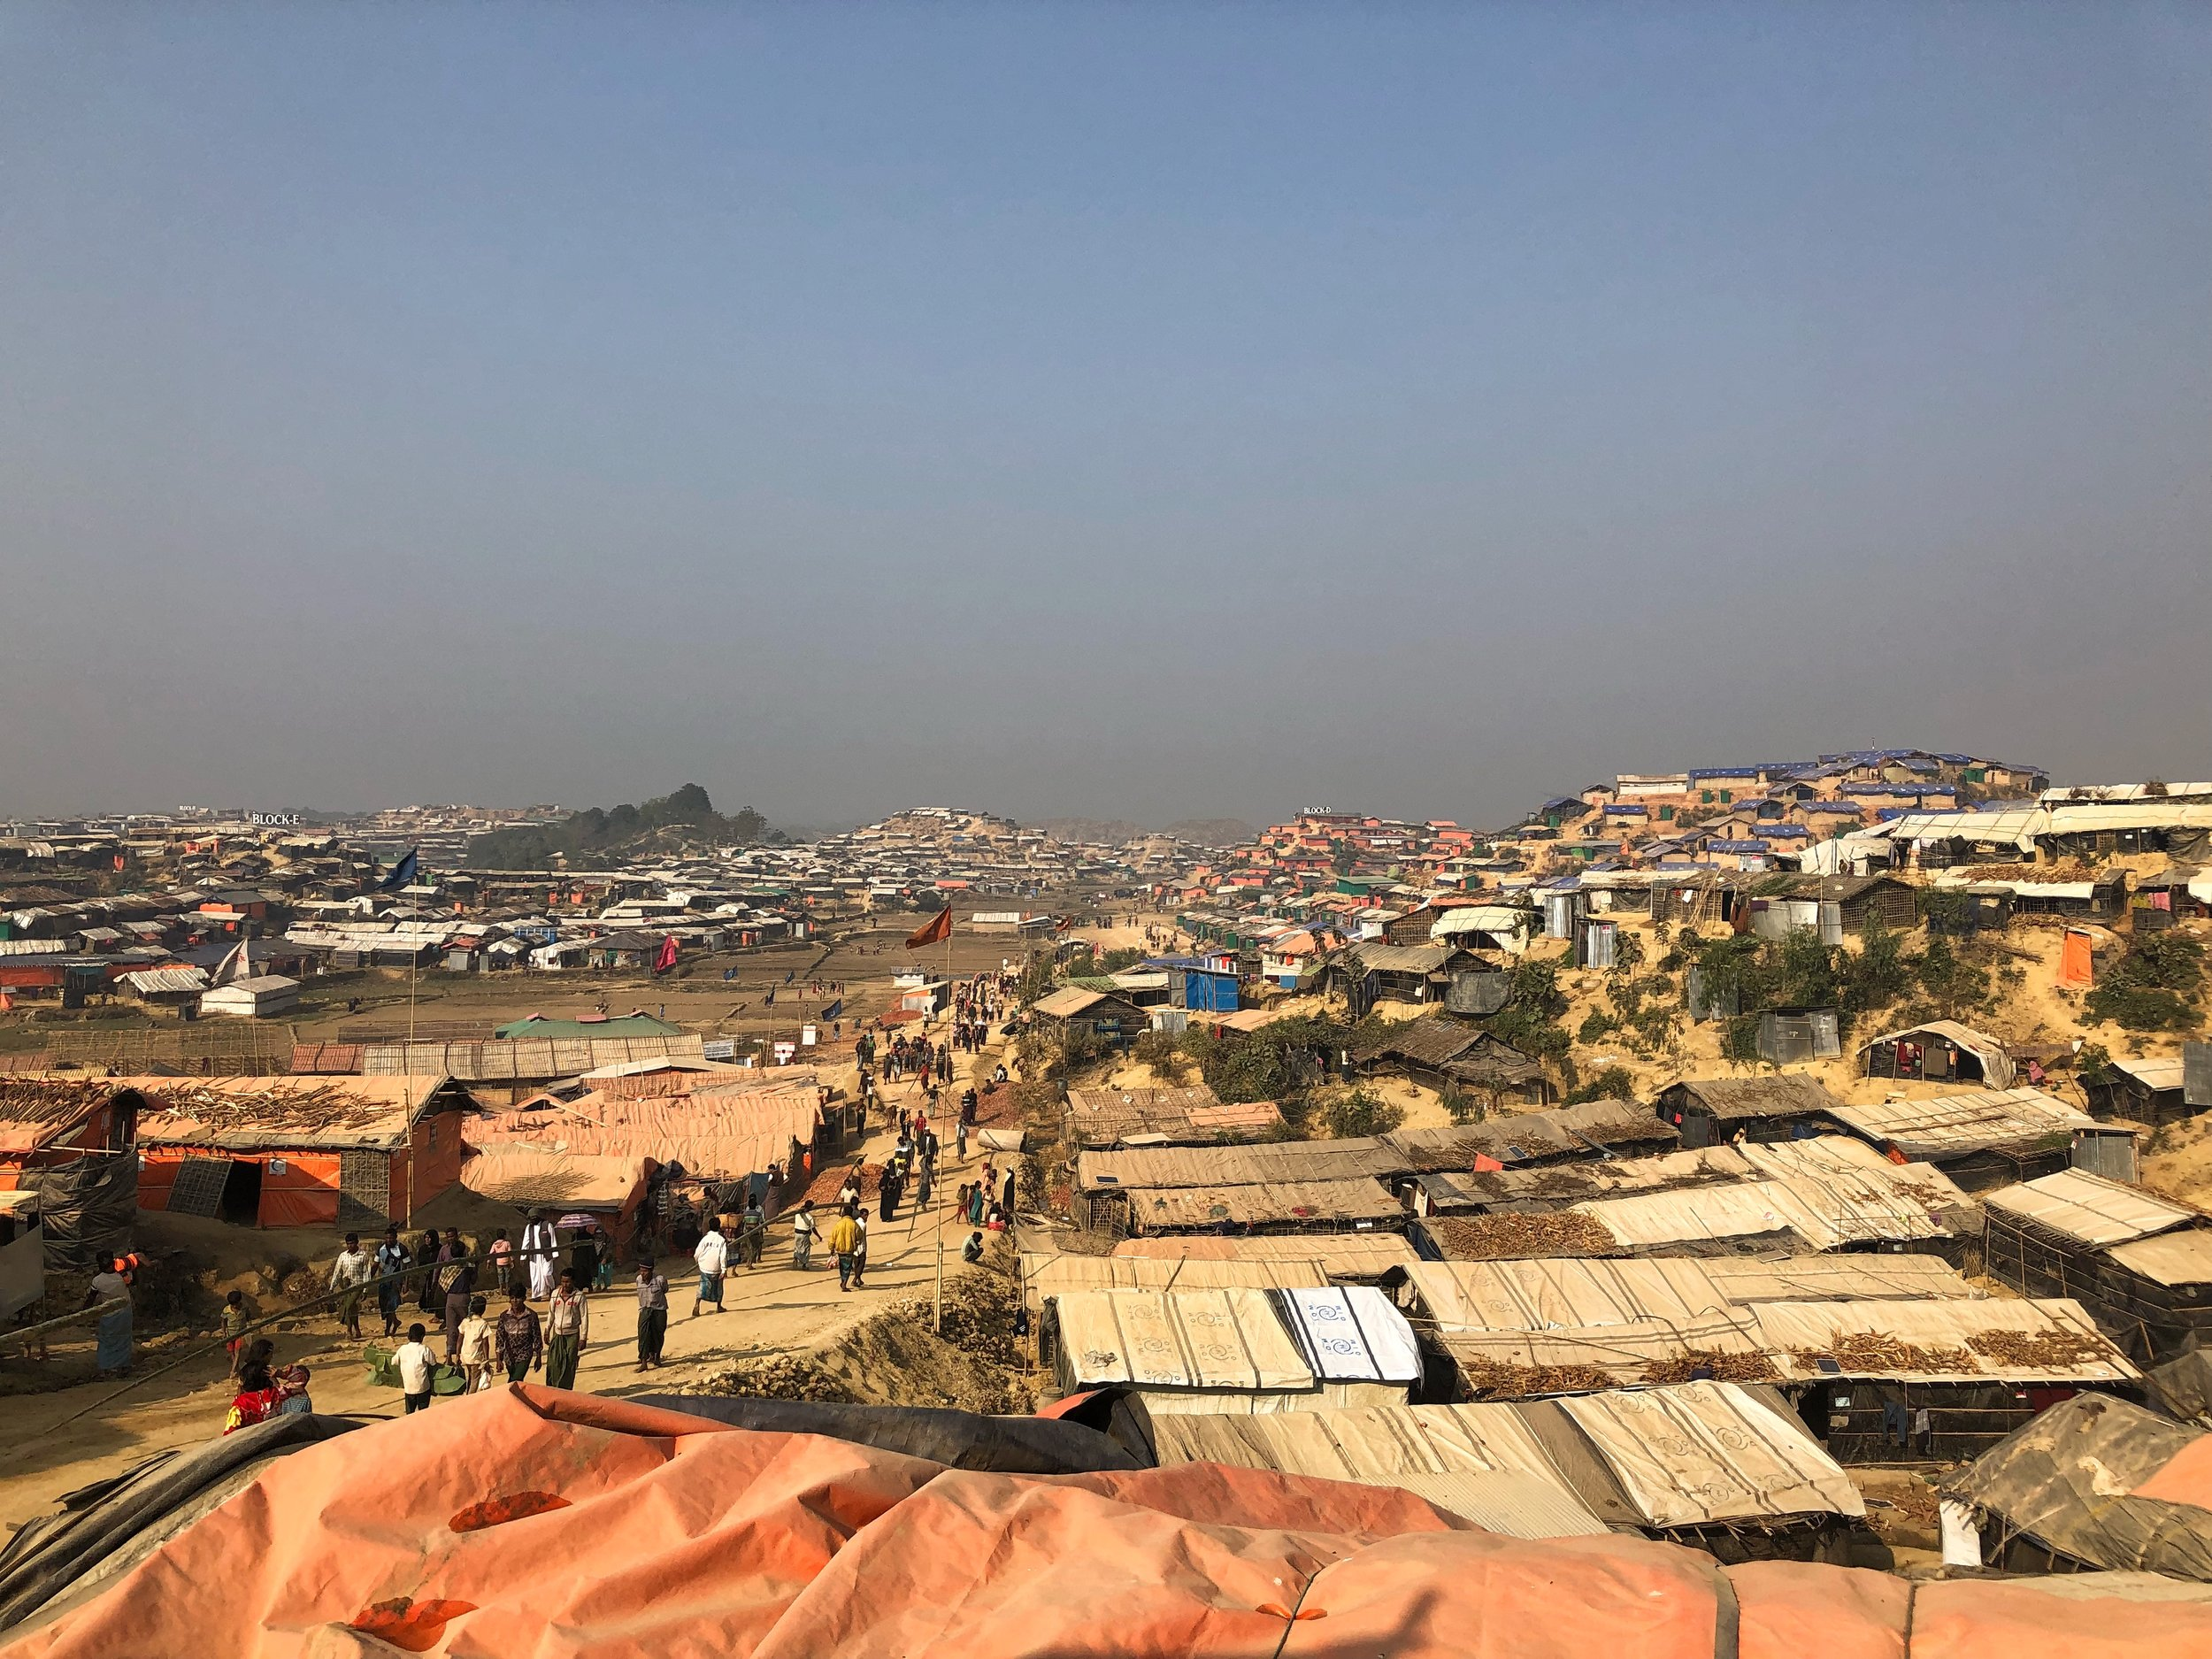 The sprawling Tangkhali houses over 300,000 refugees, one of three camps in the Cox's Bazar district that borders neighbouring Burma